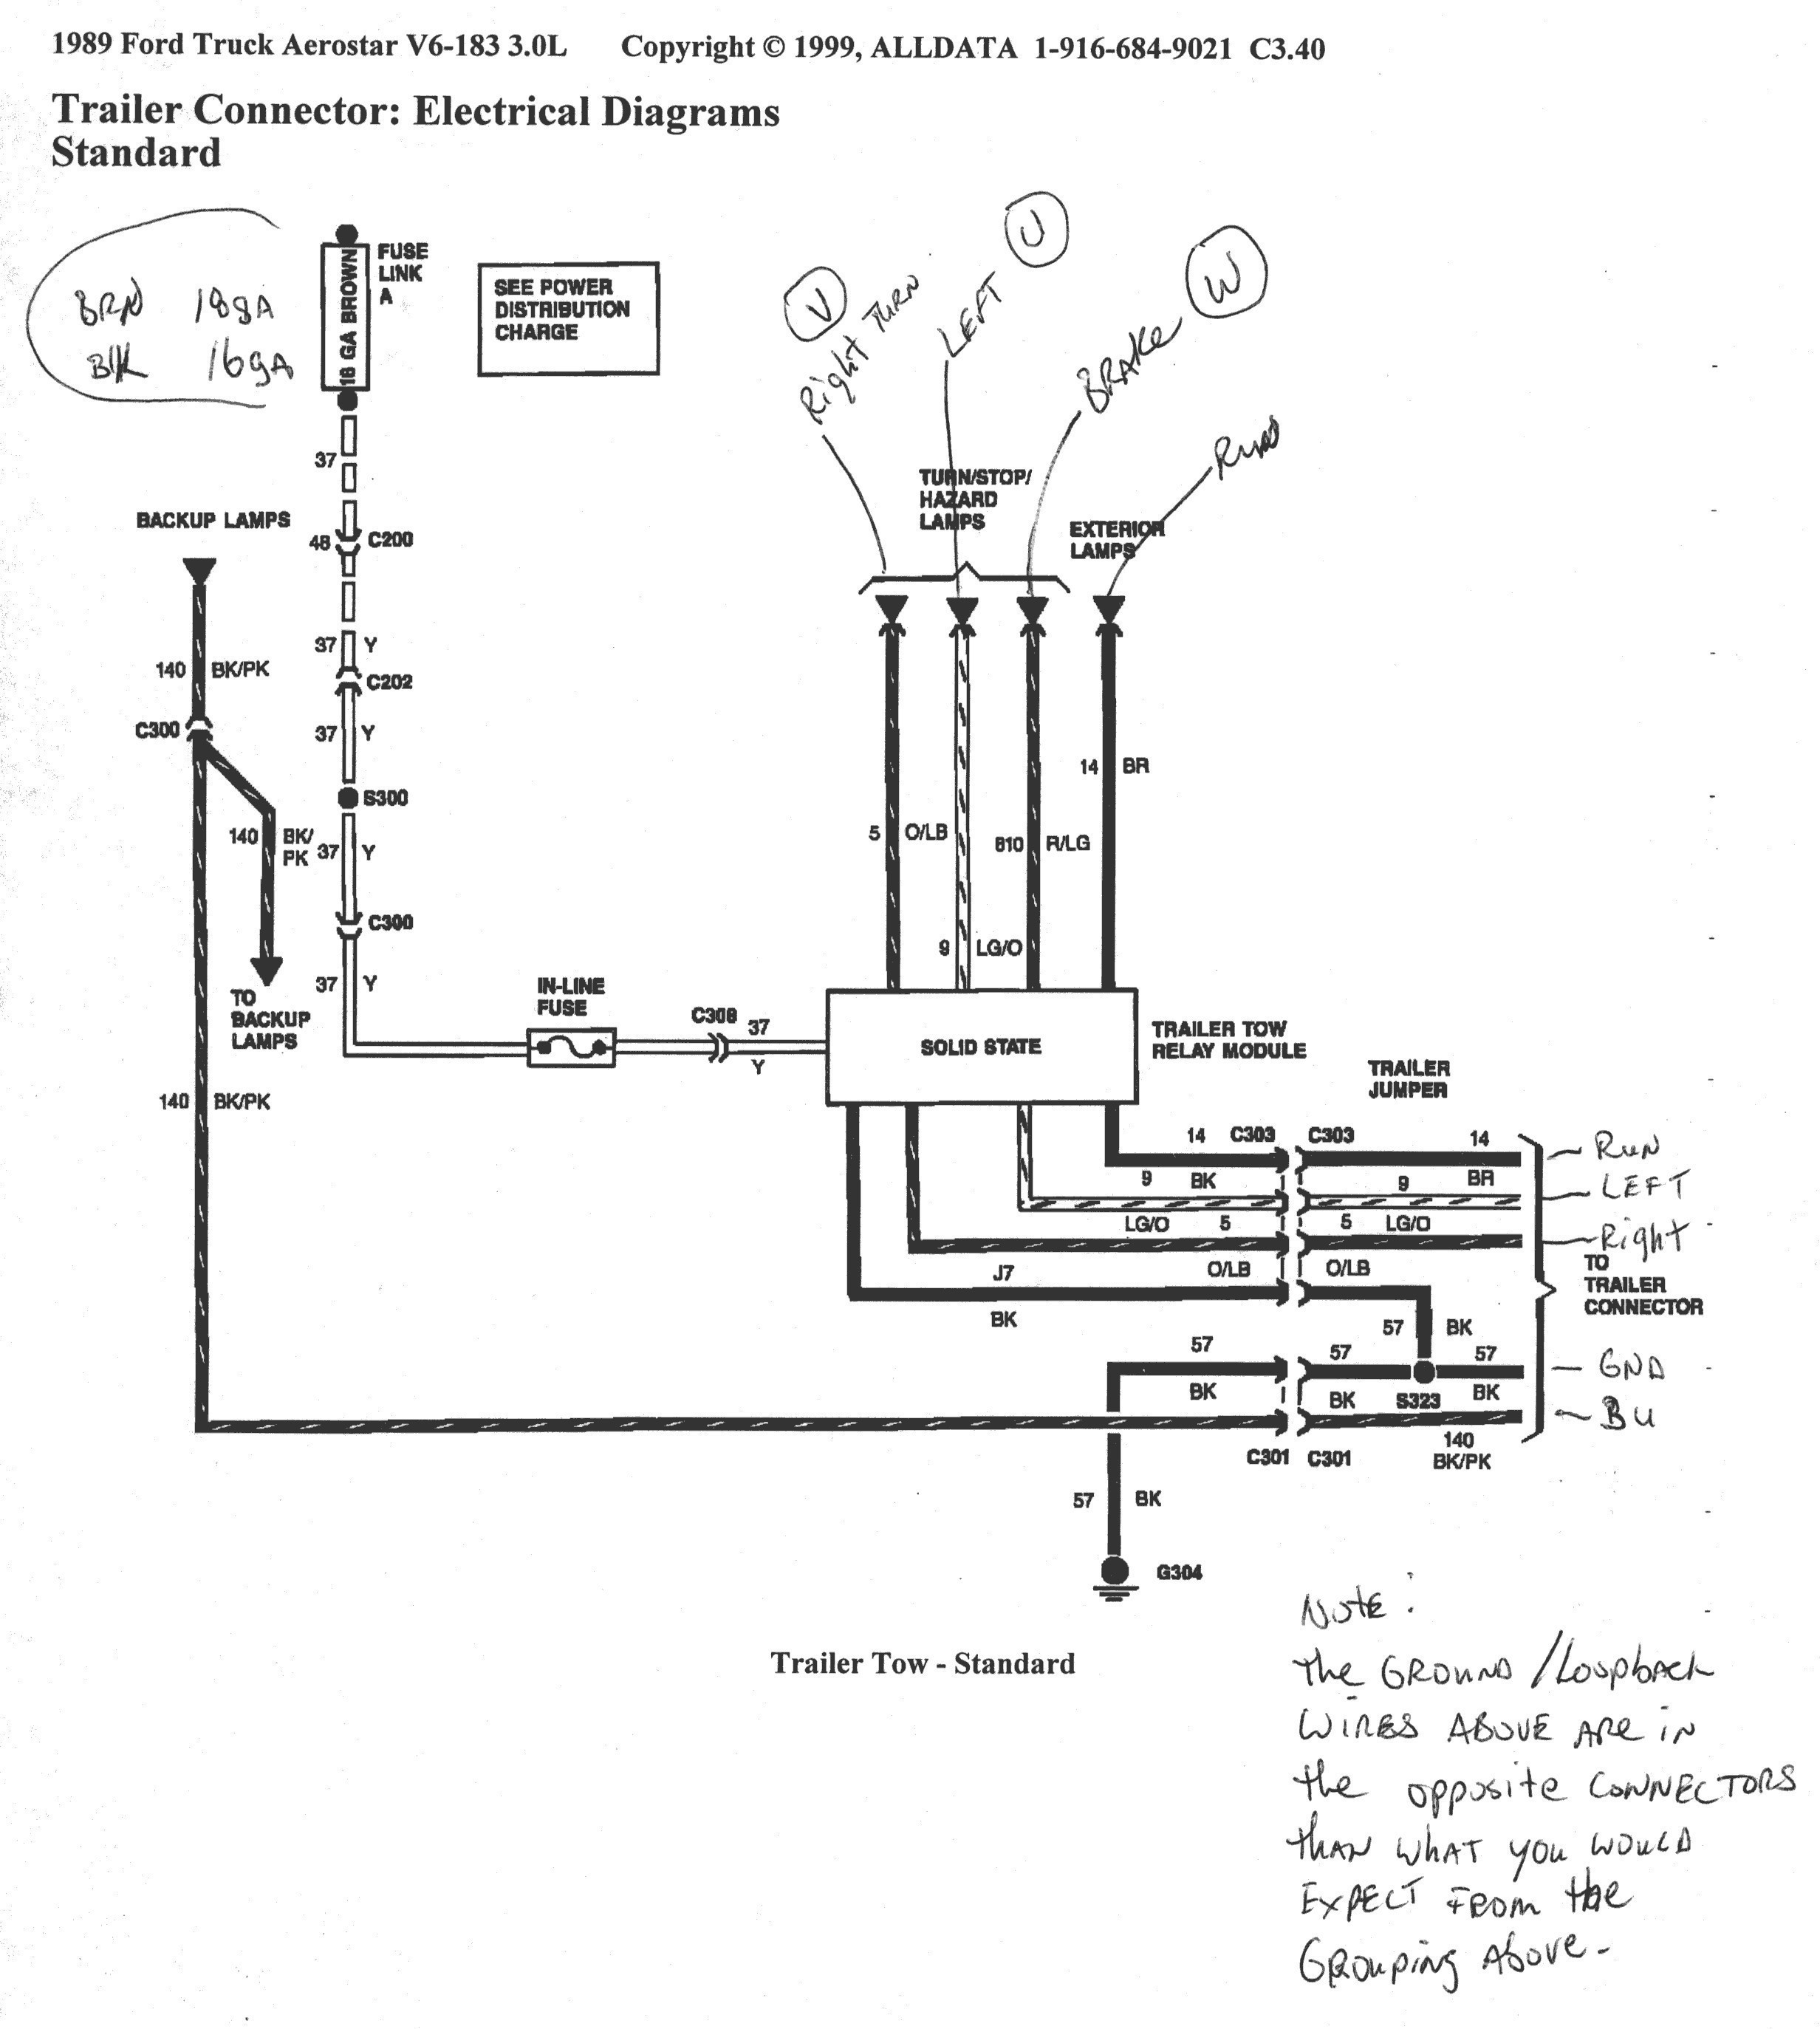 2000 ford f350 tail light wiring diagram best of 2002 f350 tail light wiring enthusiast wiring diagrams e280a2 of 2000 ford f350 tail light wiring diagram